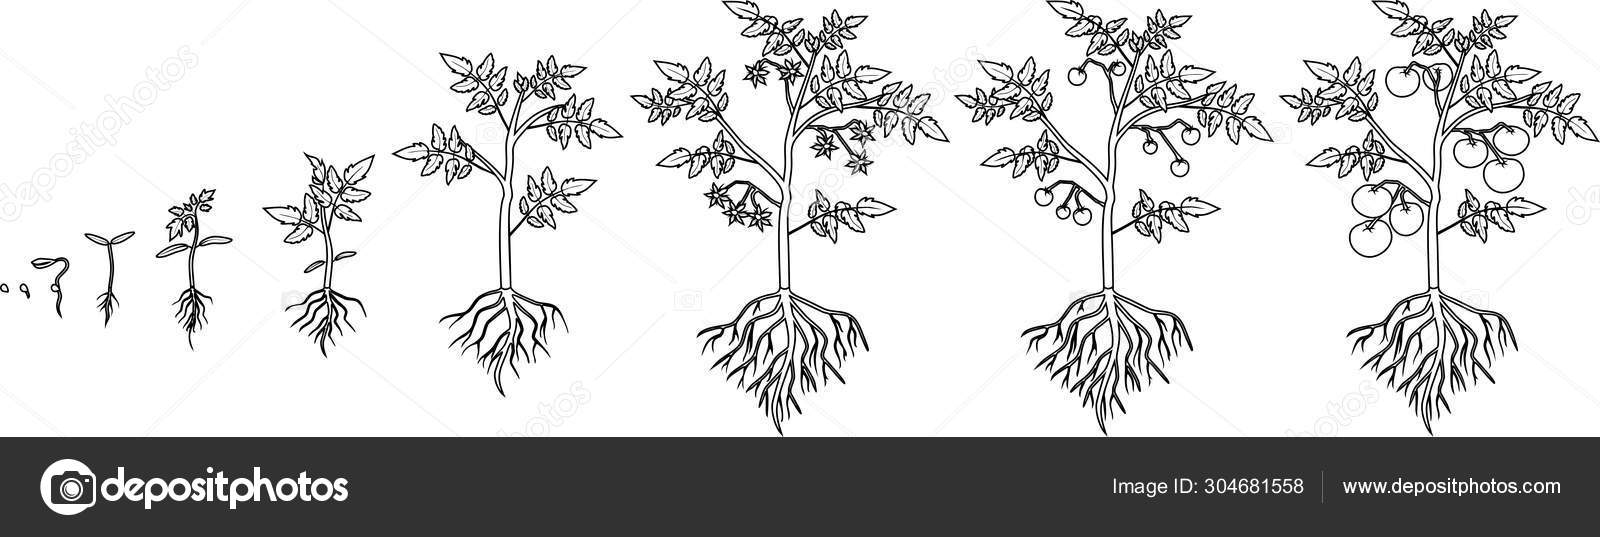 Free Life Cycle Of A Plant Coloring Page, Download Free Clip Art ... | 537x1600